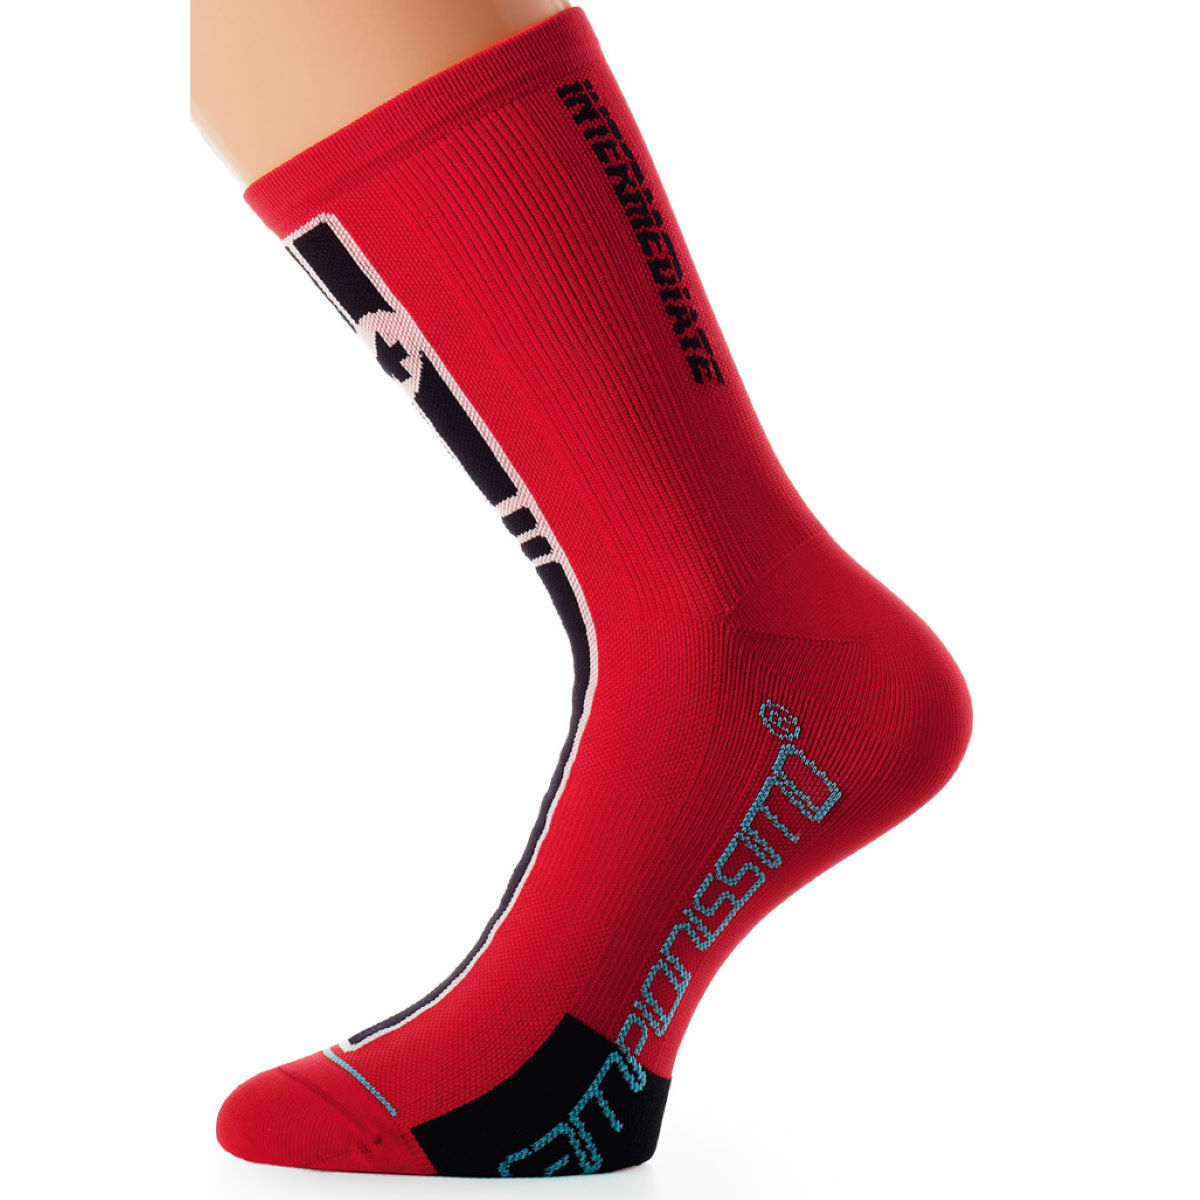 Chaussettes Assos intermediate S7 - (0) Red Swiss Chaussettes vélo